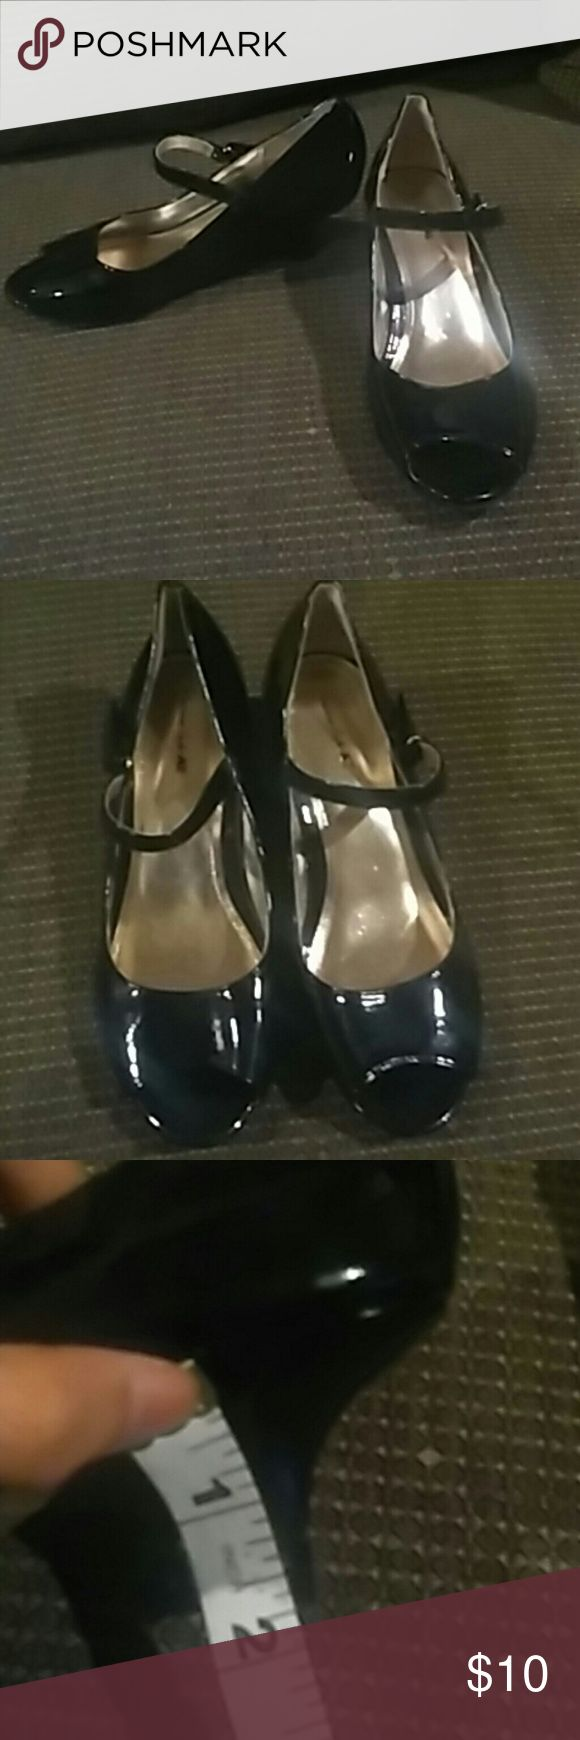 Shiny black and gold peep toe heels Shiny black and gold peep toe heels. 2 inch heels. Velcro straps at side. American Eagle by Payless Shoes Dress Shoes